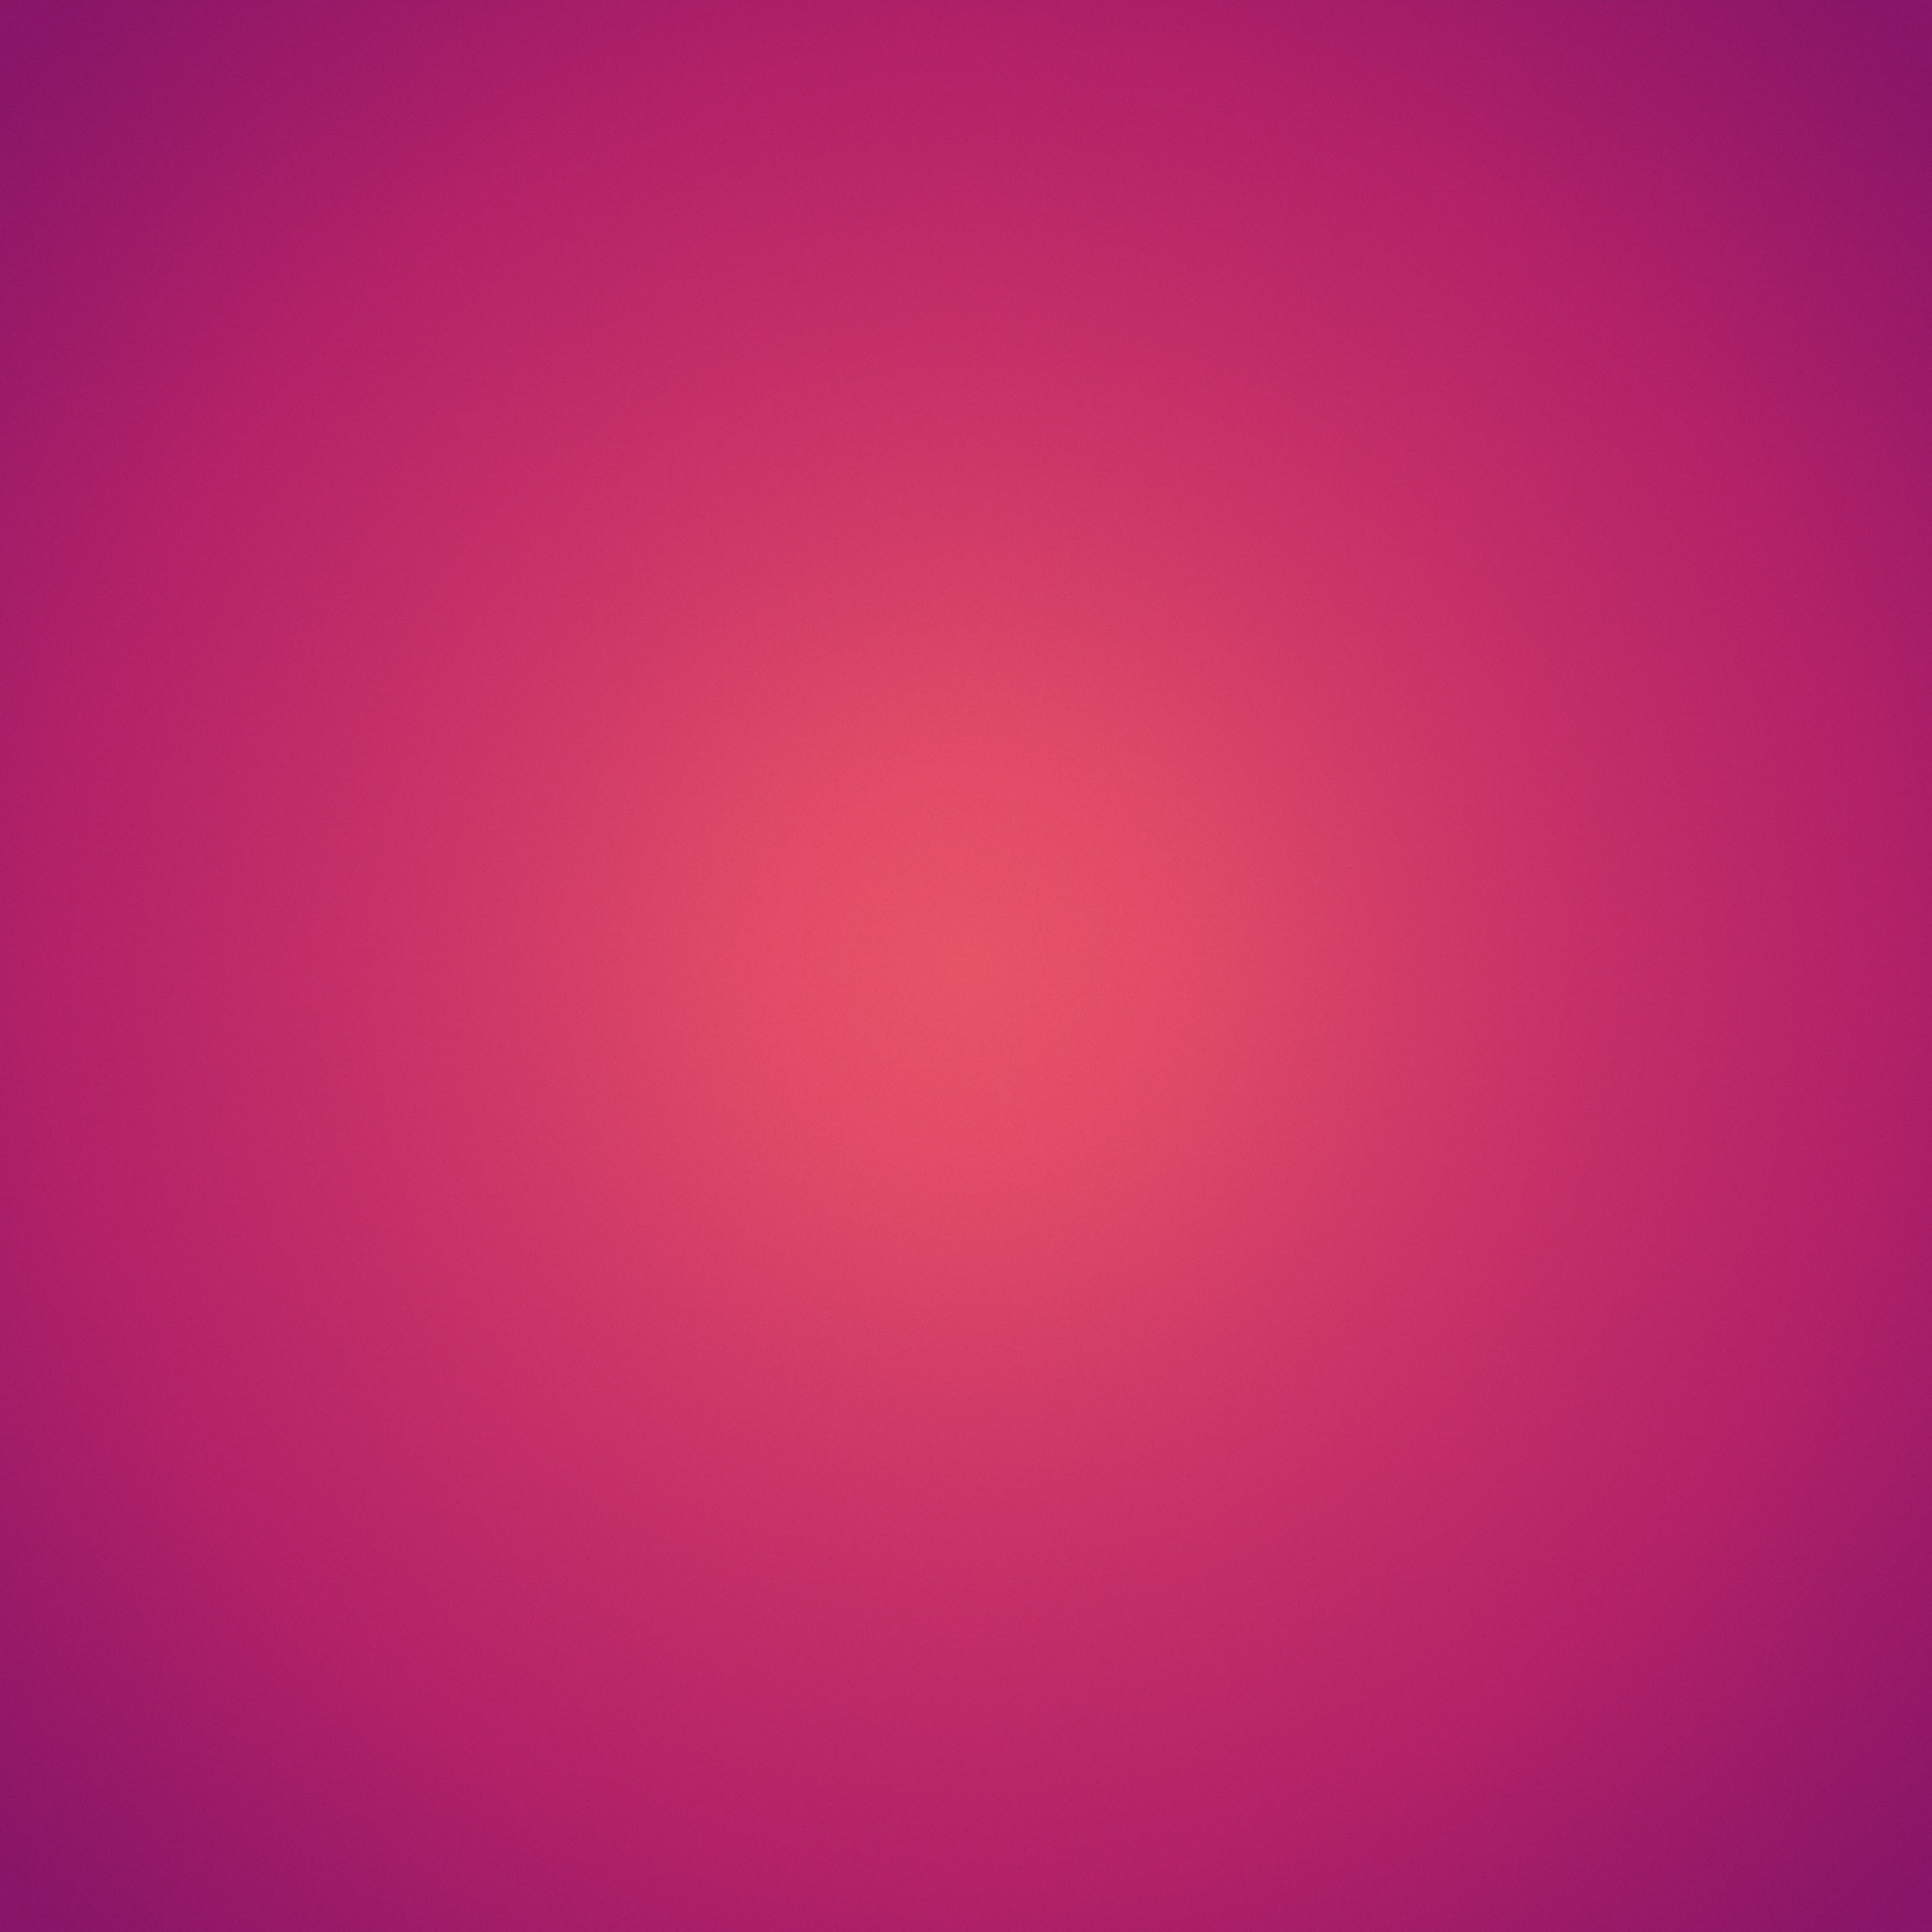 Pink Background 2560 Pixels Wide 1440 Pixels Tall 2048x2048